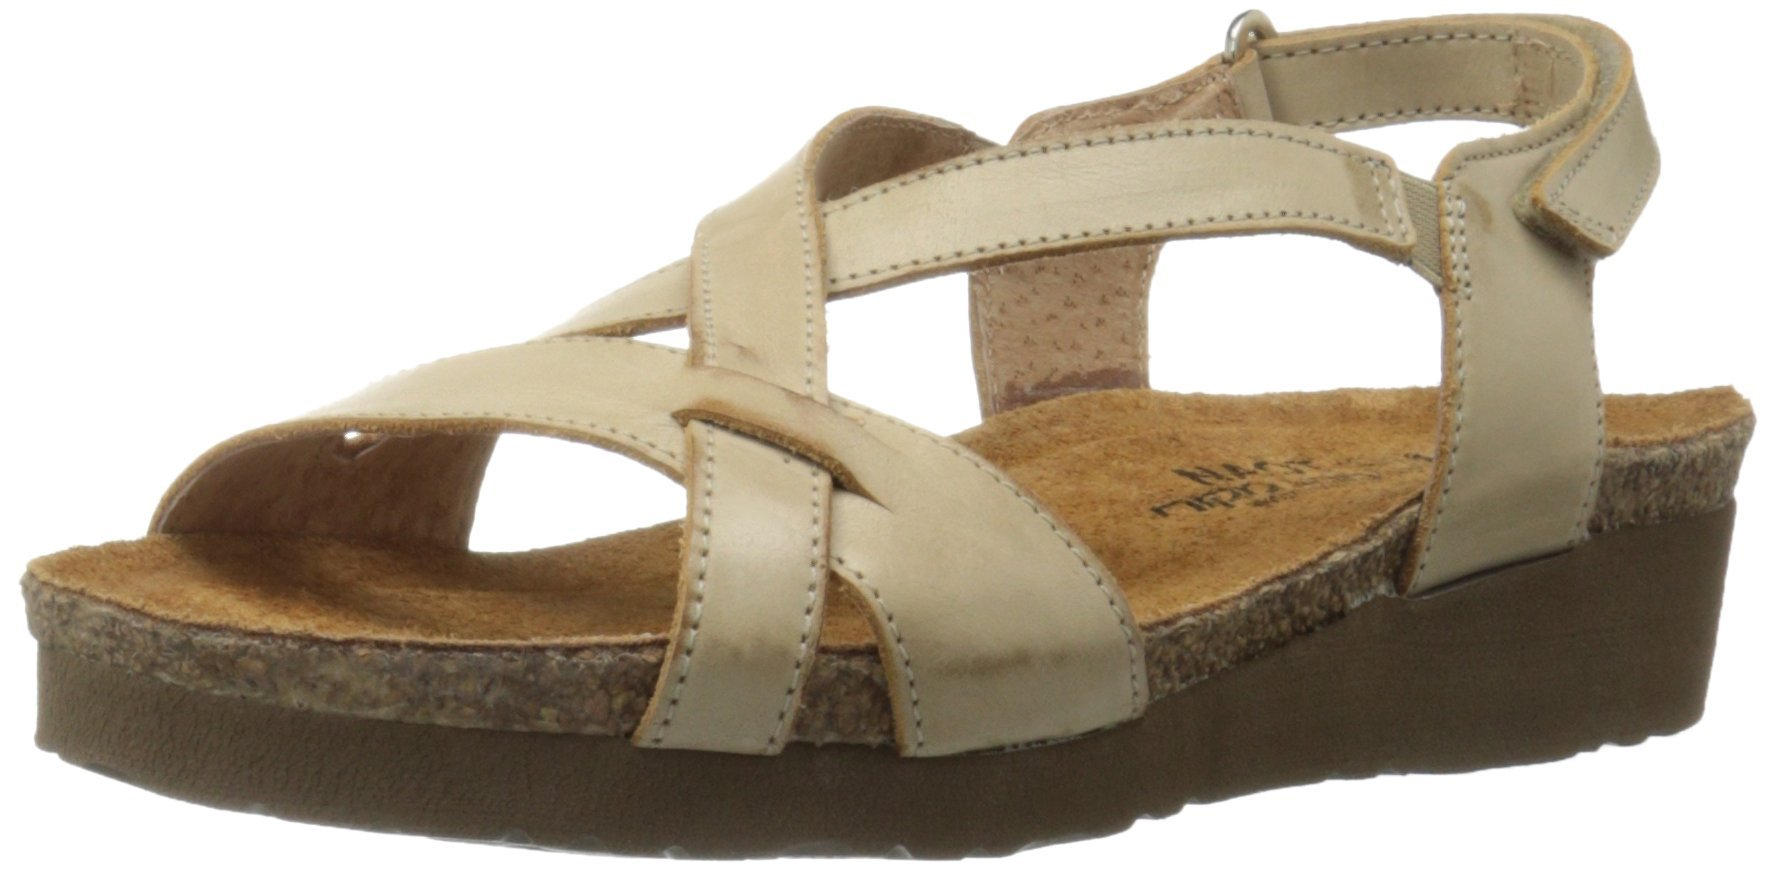 Naot Women's Bernice Wedge Sandal, Biscuit Leather, 35 EU/4.5-5 M US